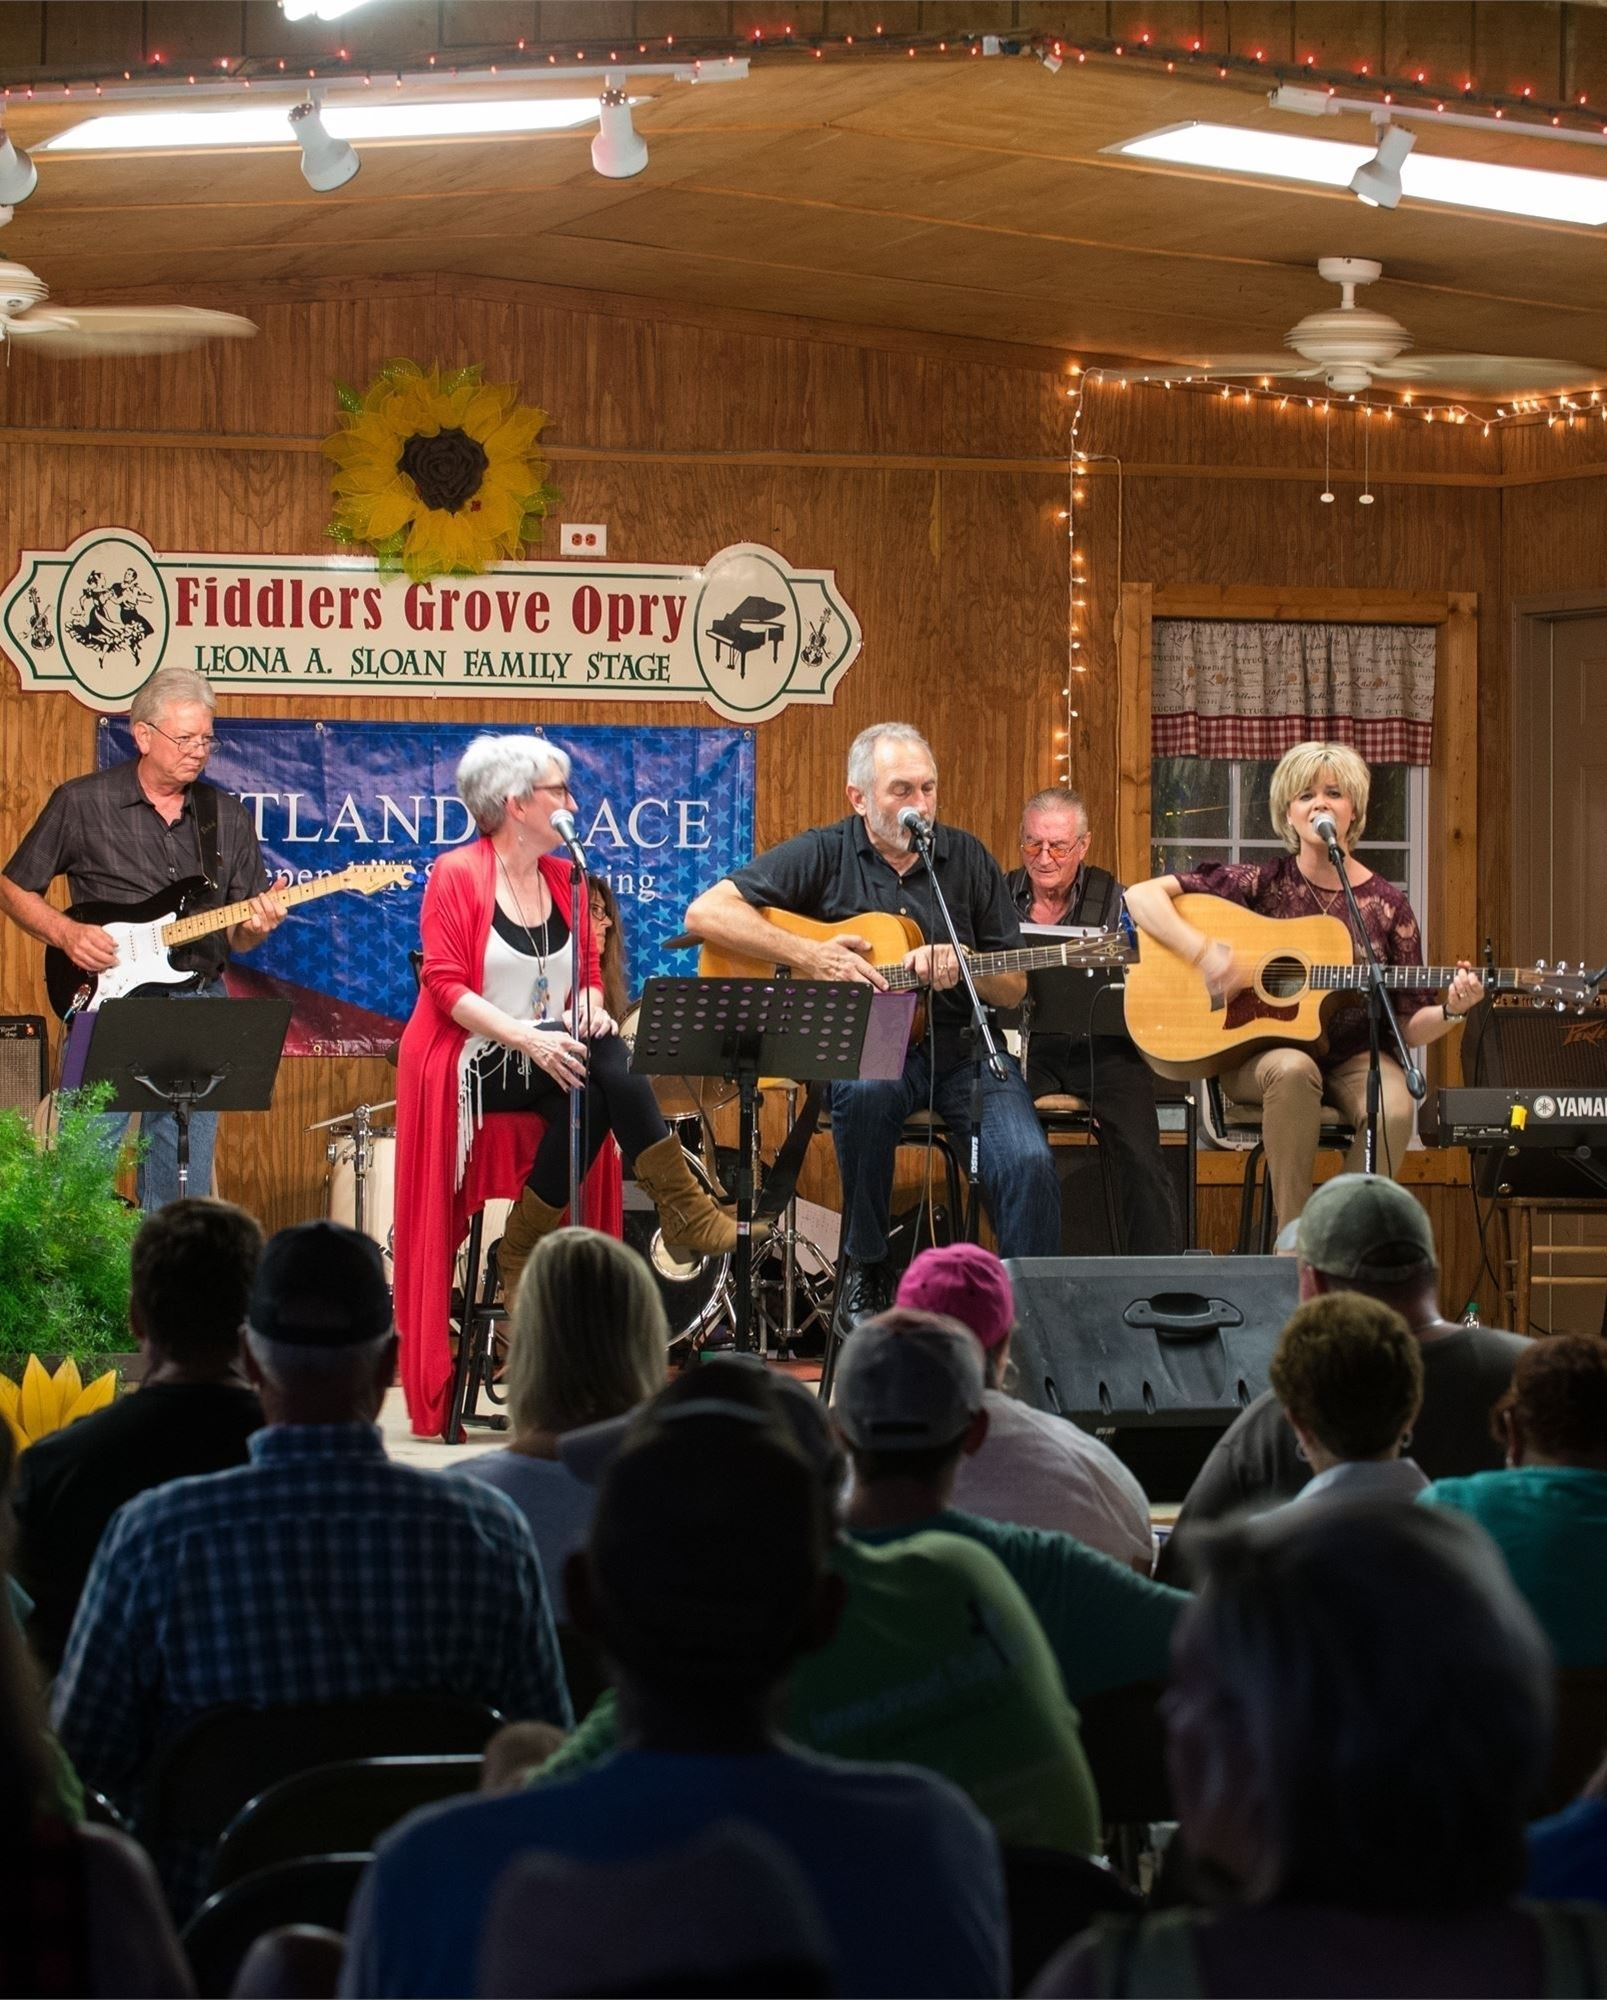 Fiddlers Grove Opry